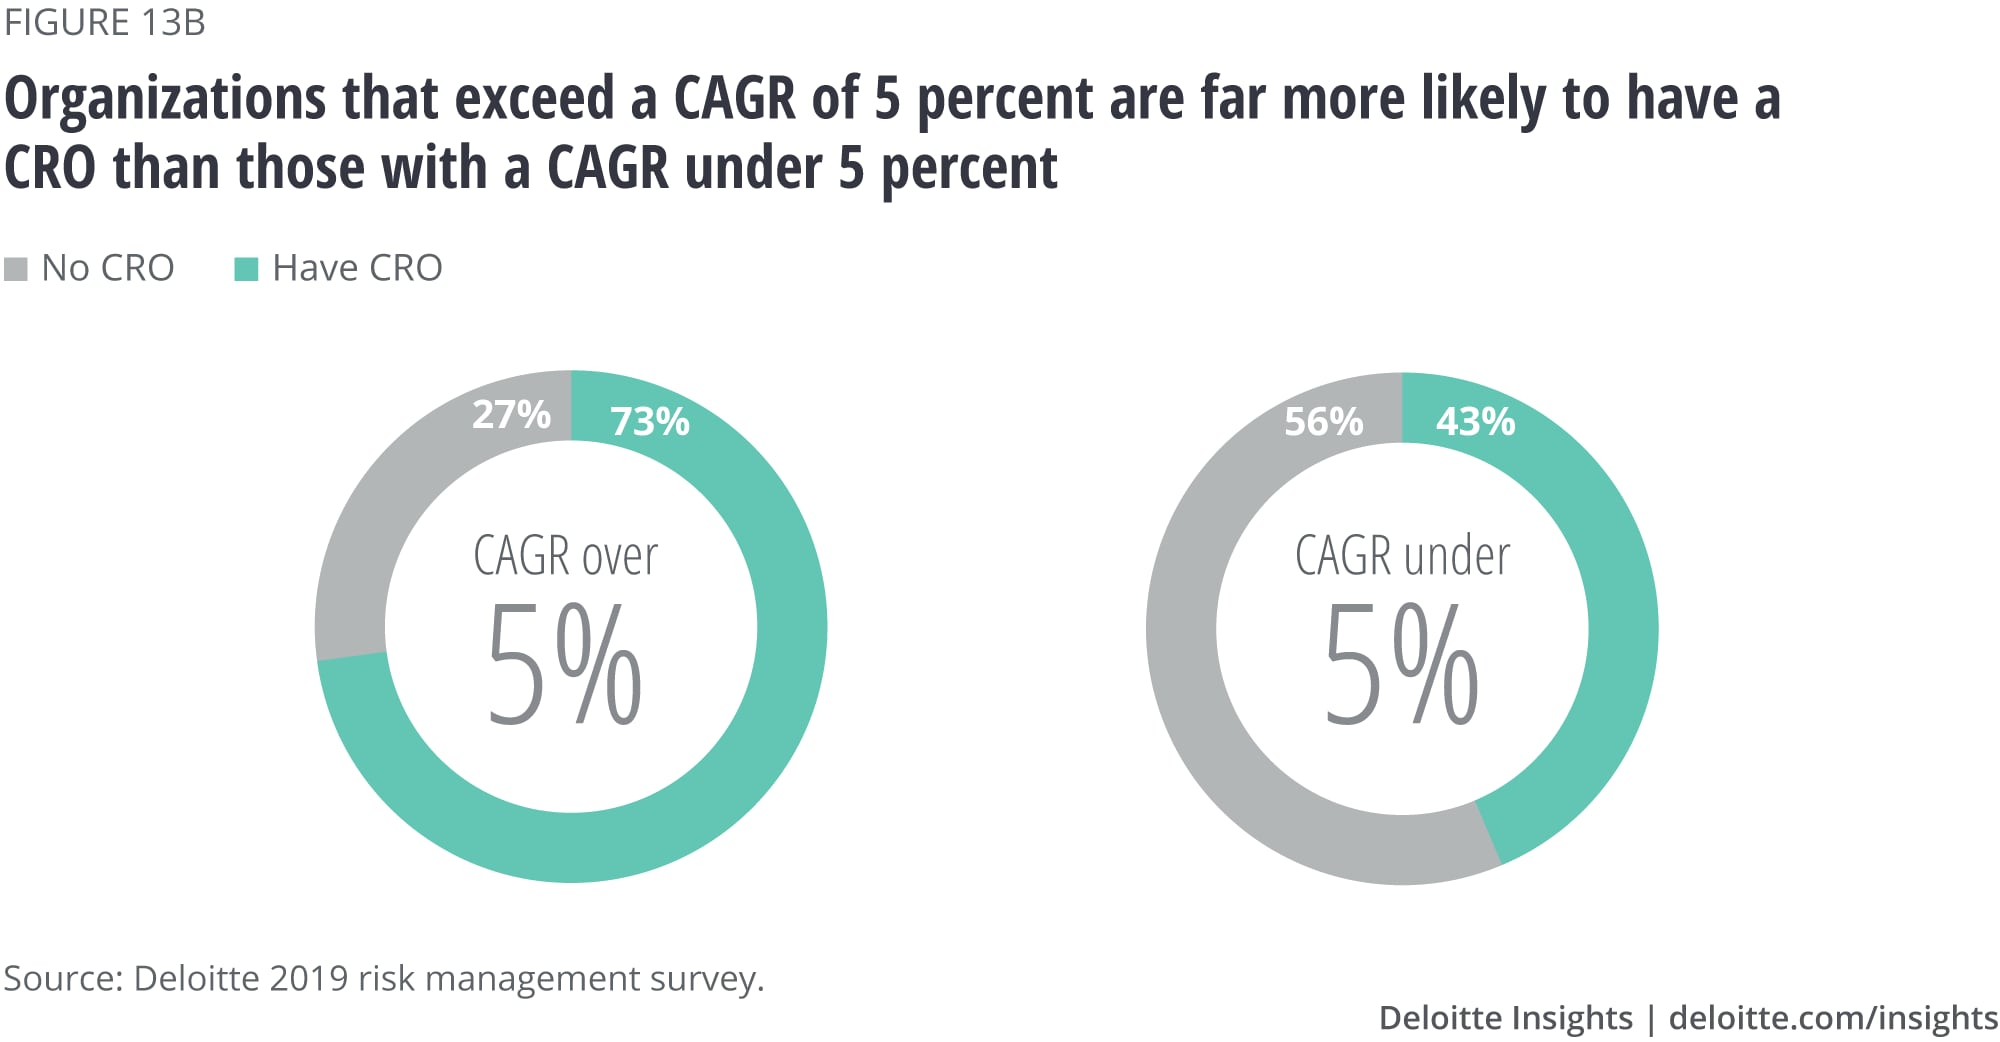 Organizations that exceed a CAGR of 5 percent are far more likely to have a CRO than those with a CAGR under 5 percent